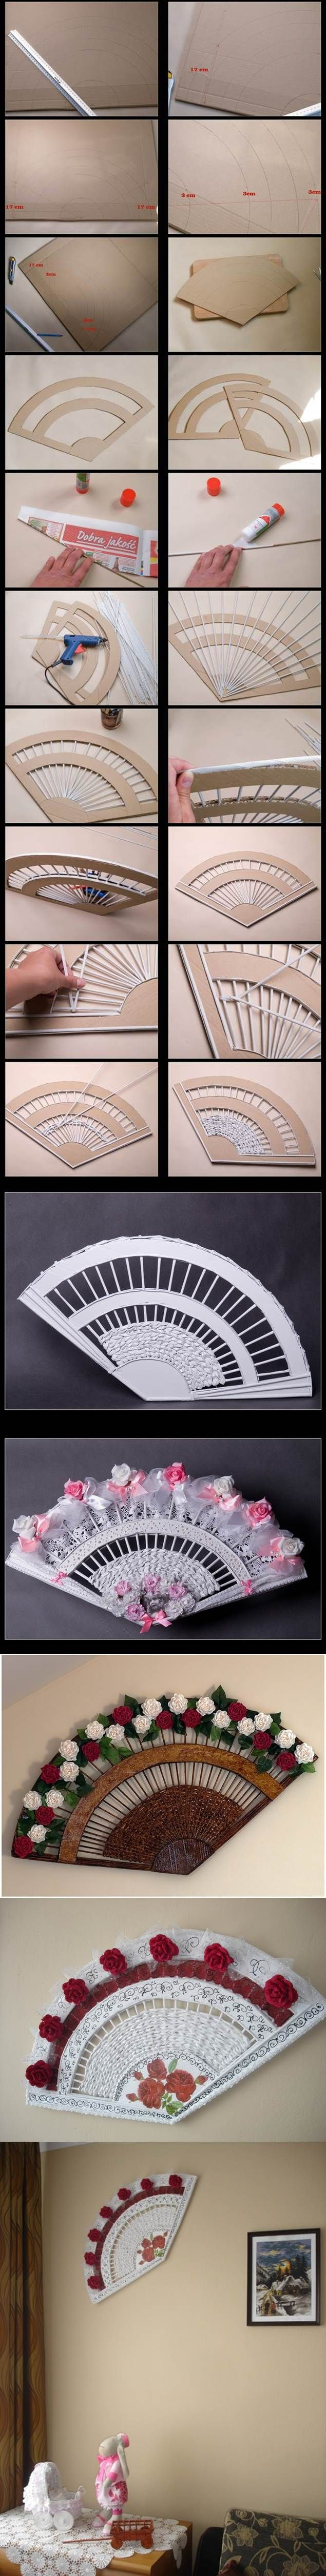 Ventaglio con cannucce di carta  DIY Decorative Fan from Old Newspaper and Cardboard 2